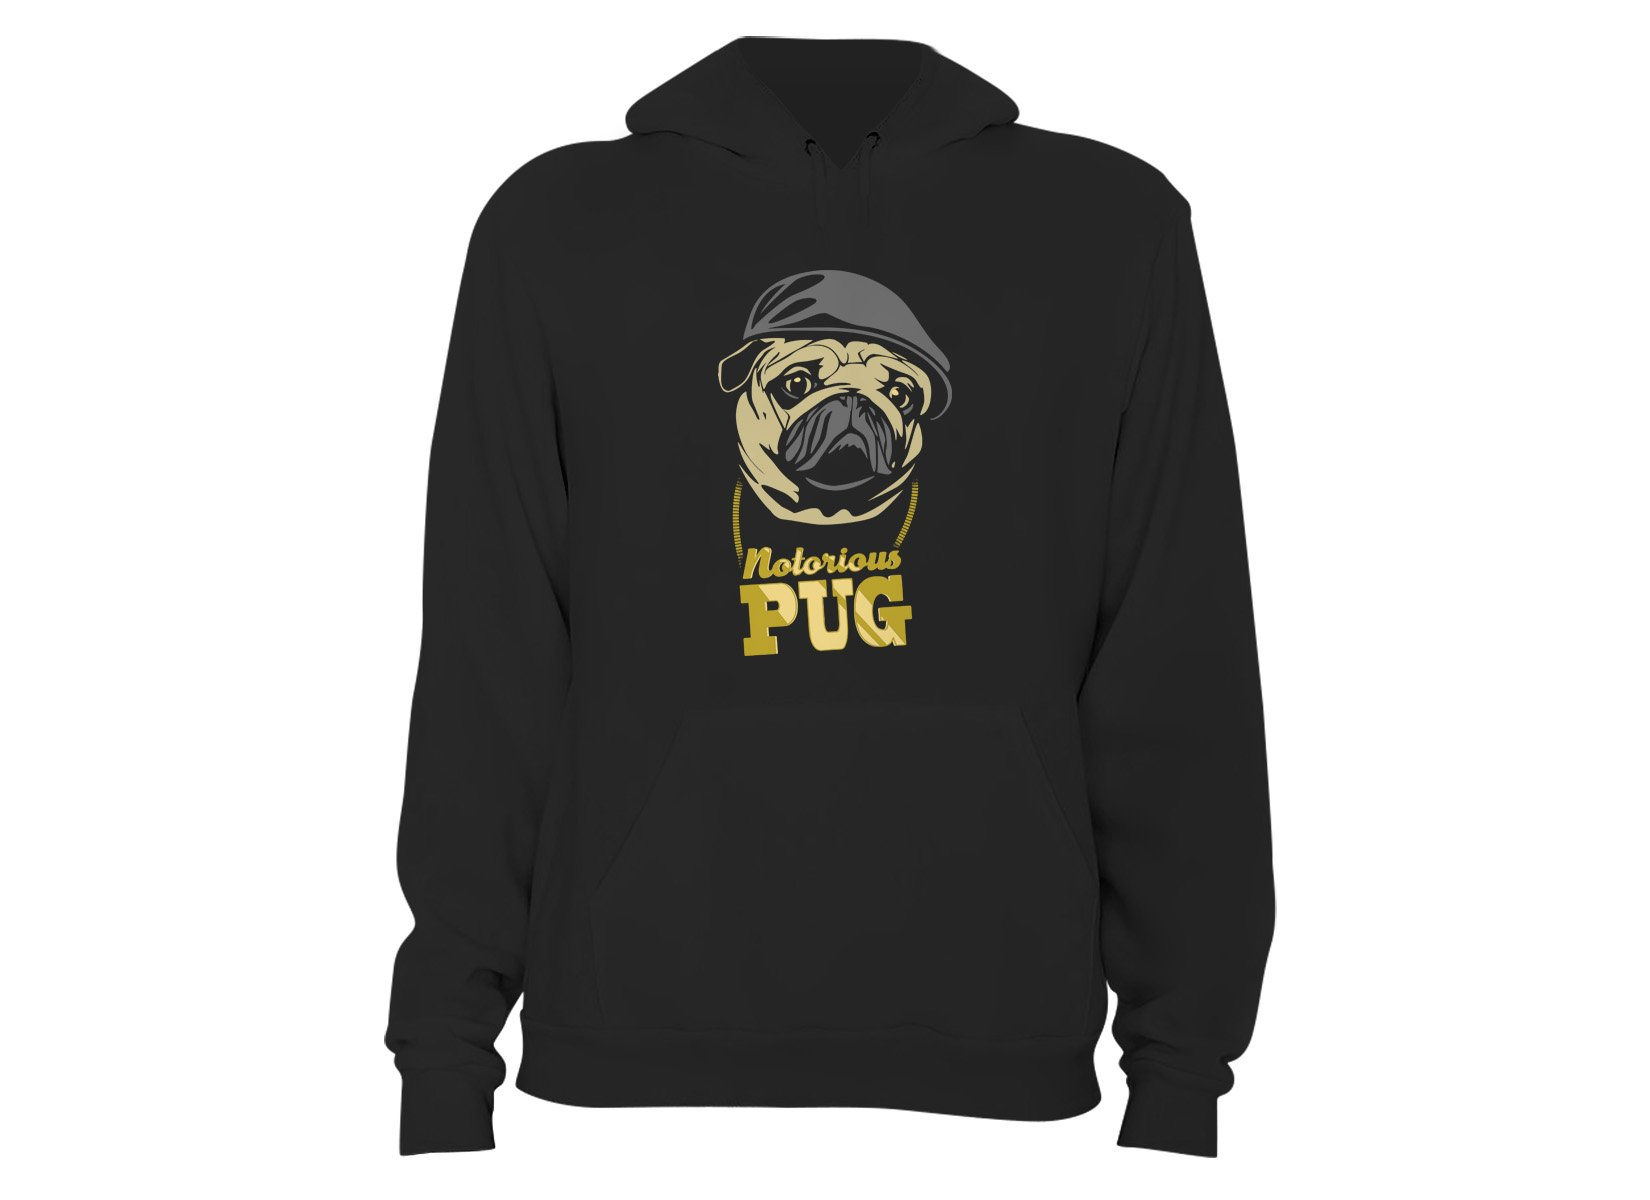 Notorious PUG on Hoodie